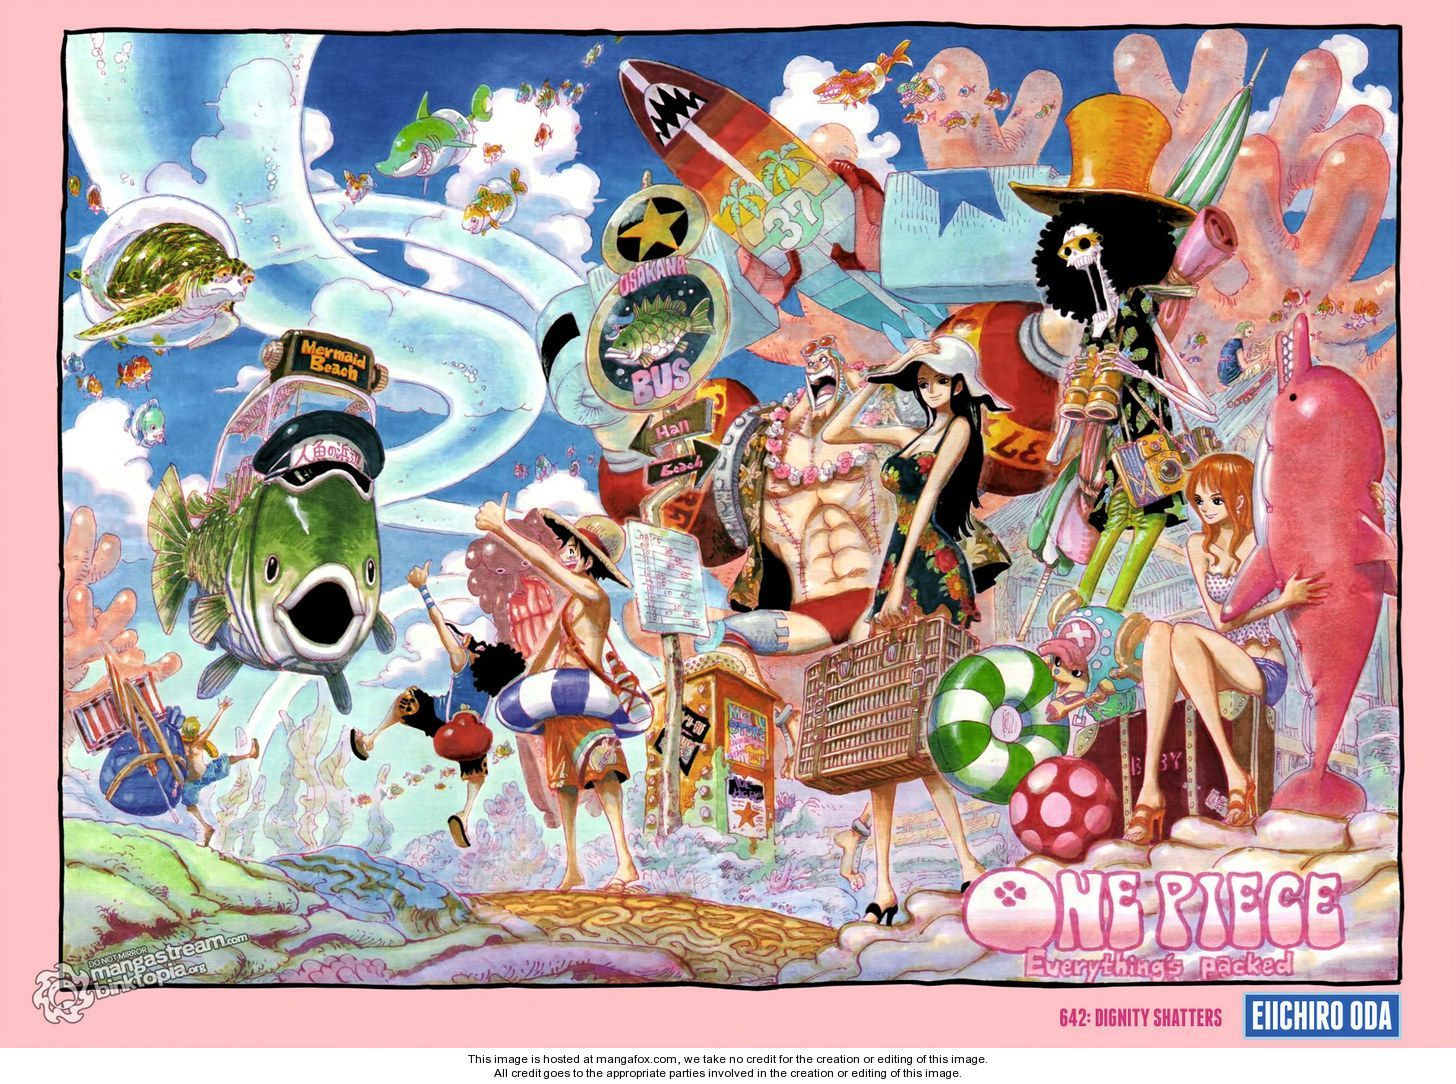 Google themes anime one piece -  One Piece Inspires Theme Park In China On Monday It Was Announced That The One Piece Manga And Anime Series Has Inspired Plans For A Massive Theme Park